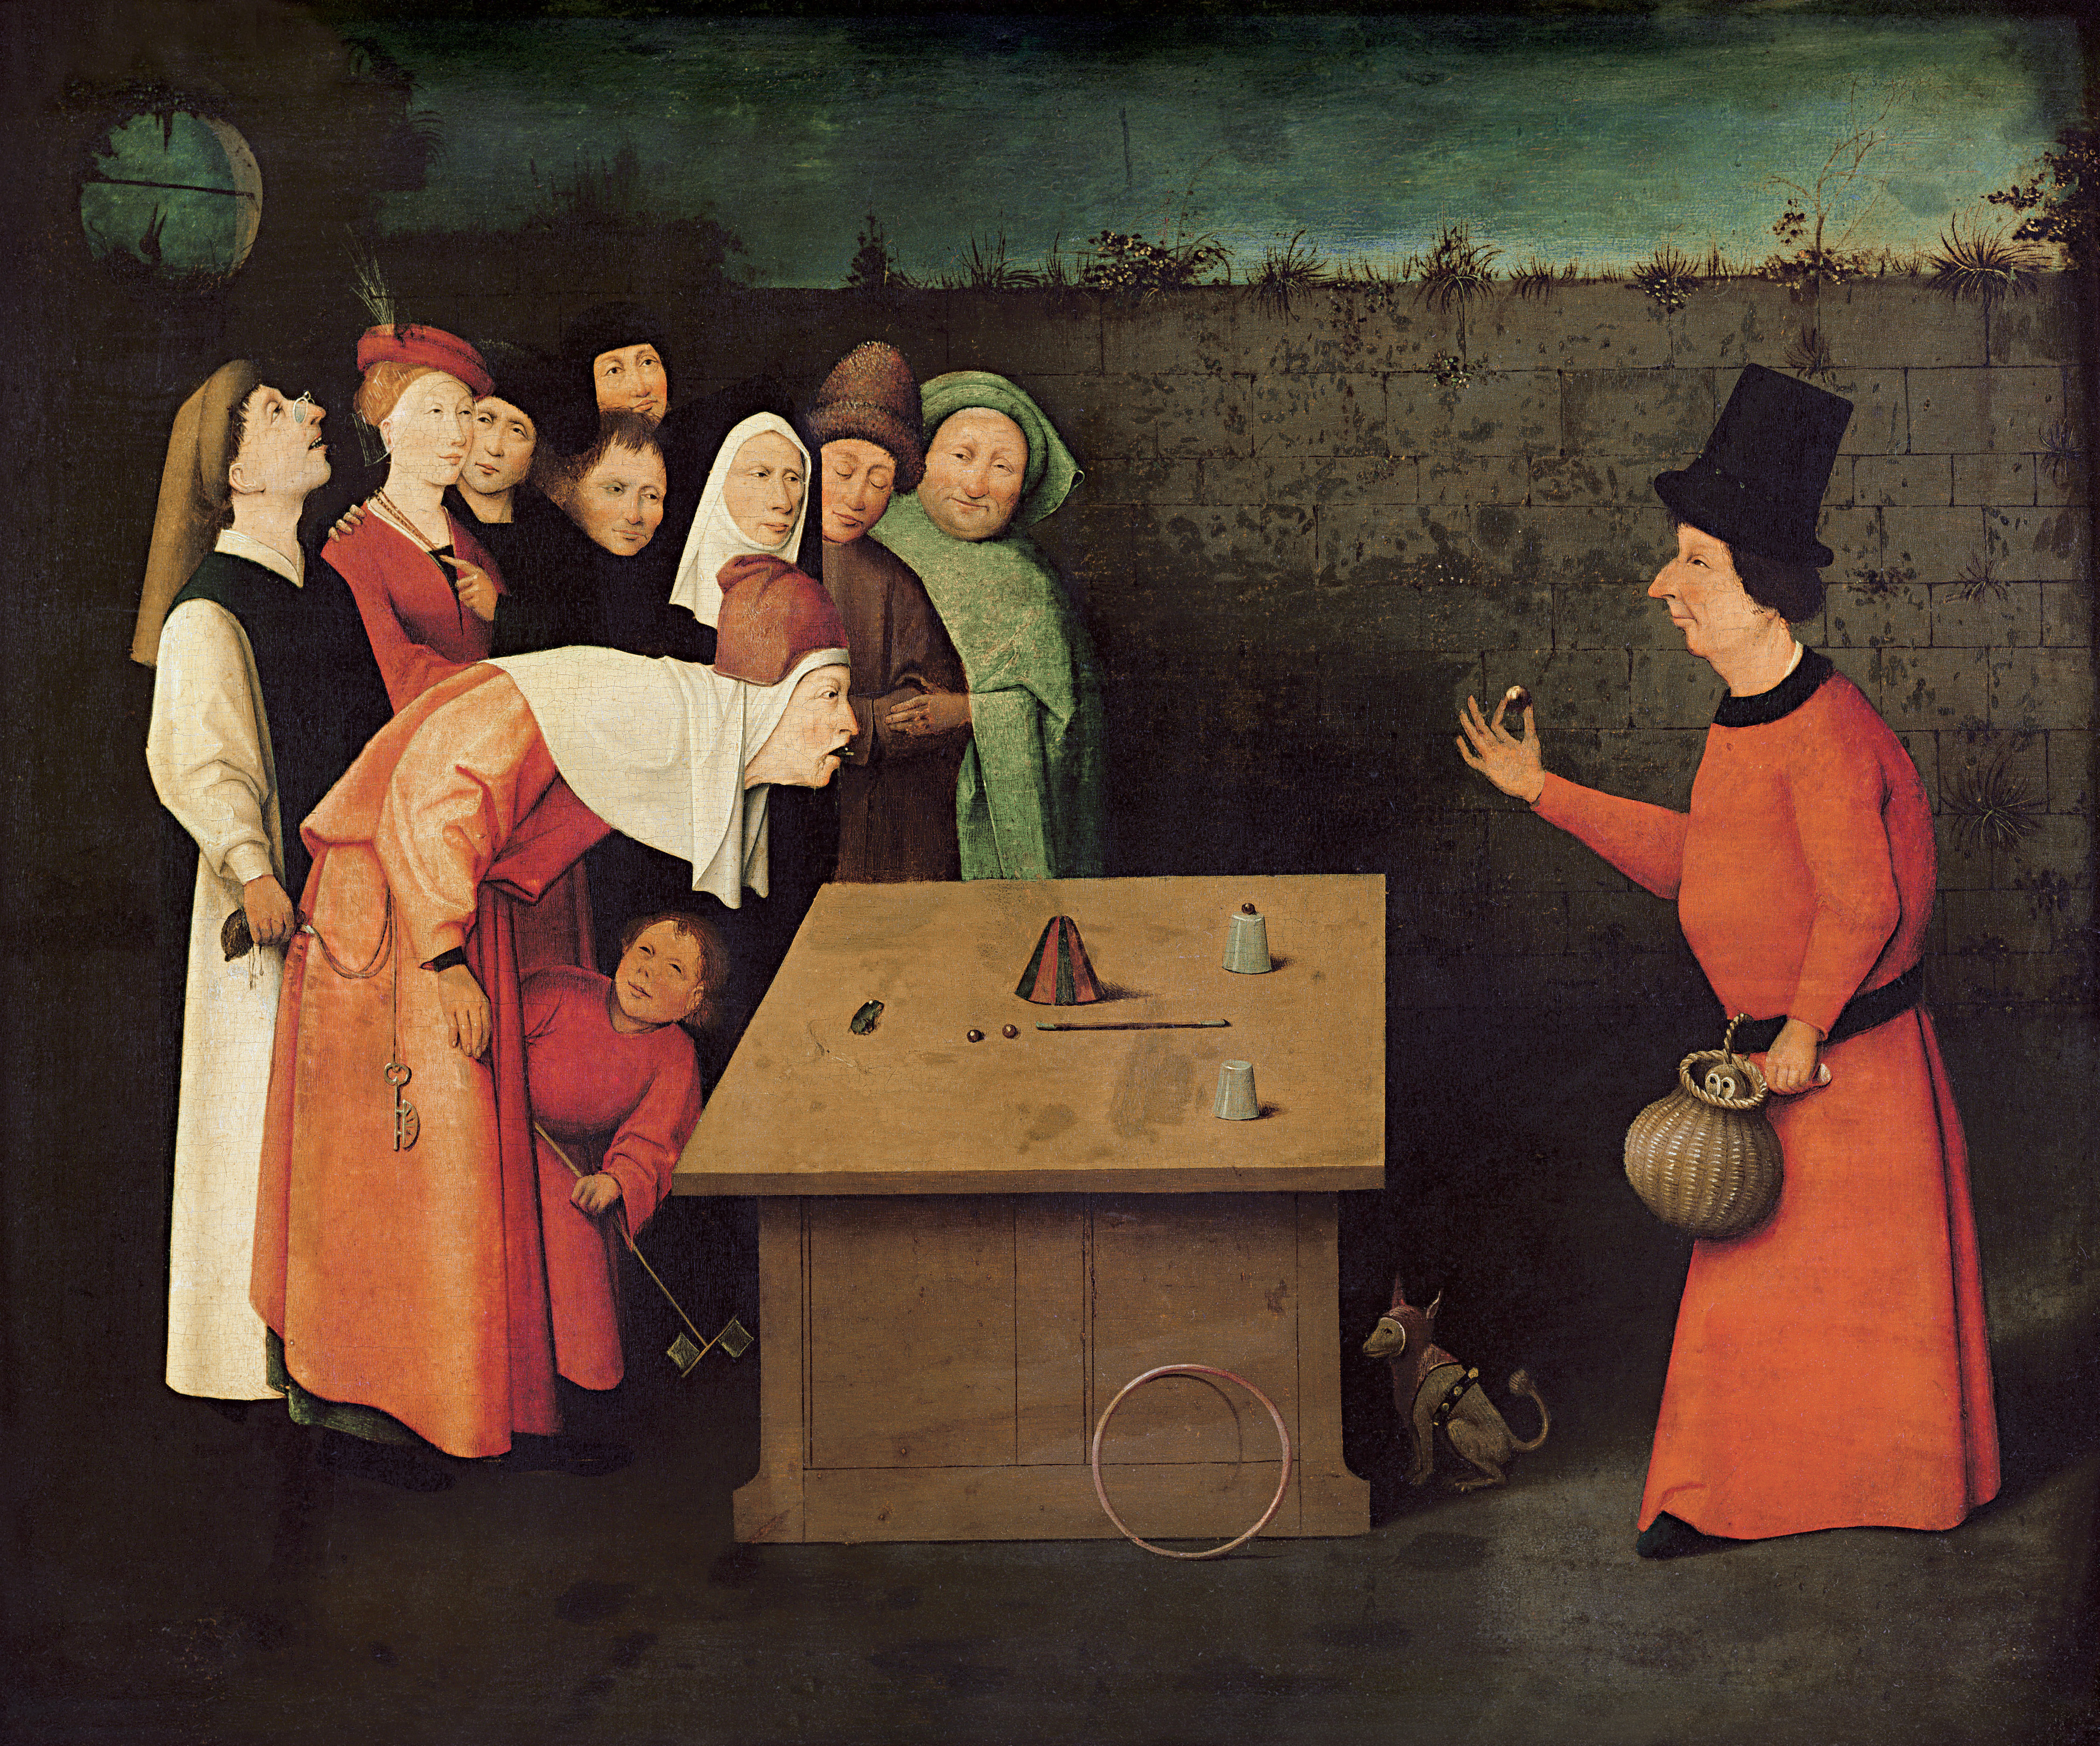 http://upload.wikimedia.org/wikipedia/commons/4/49/Hieronymus_Bosch_051.jpg